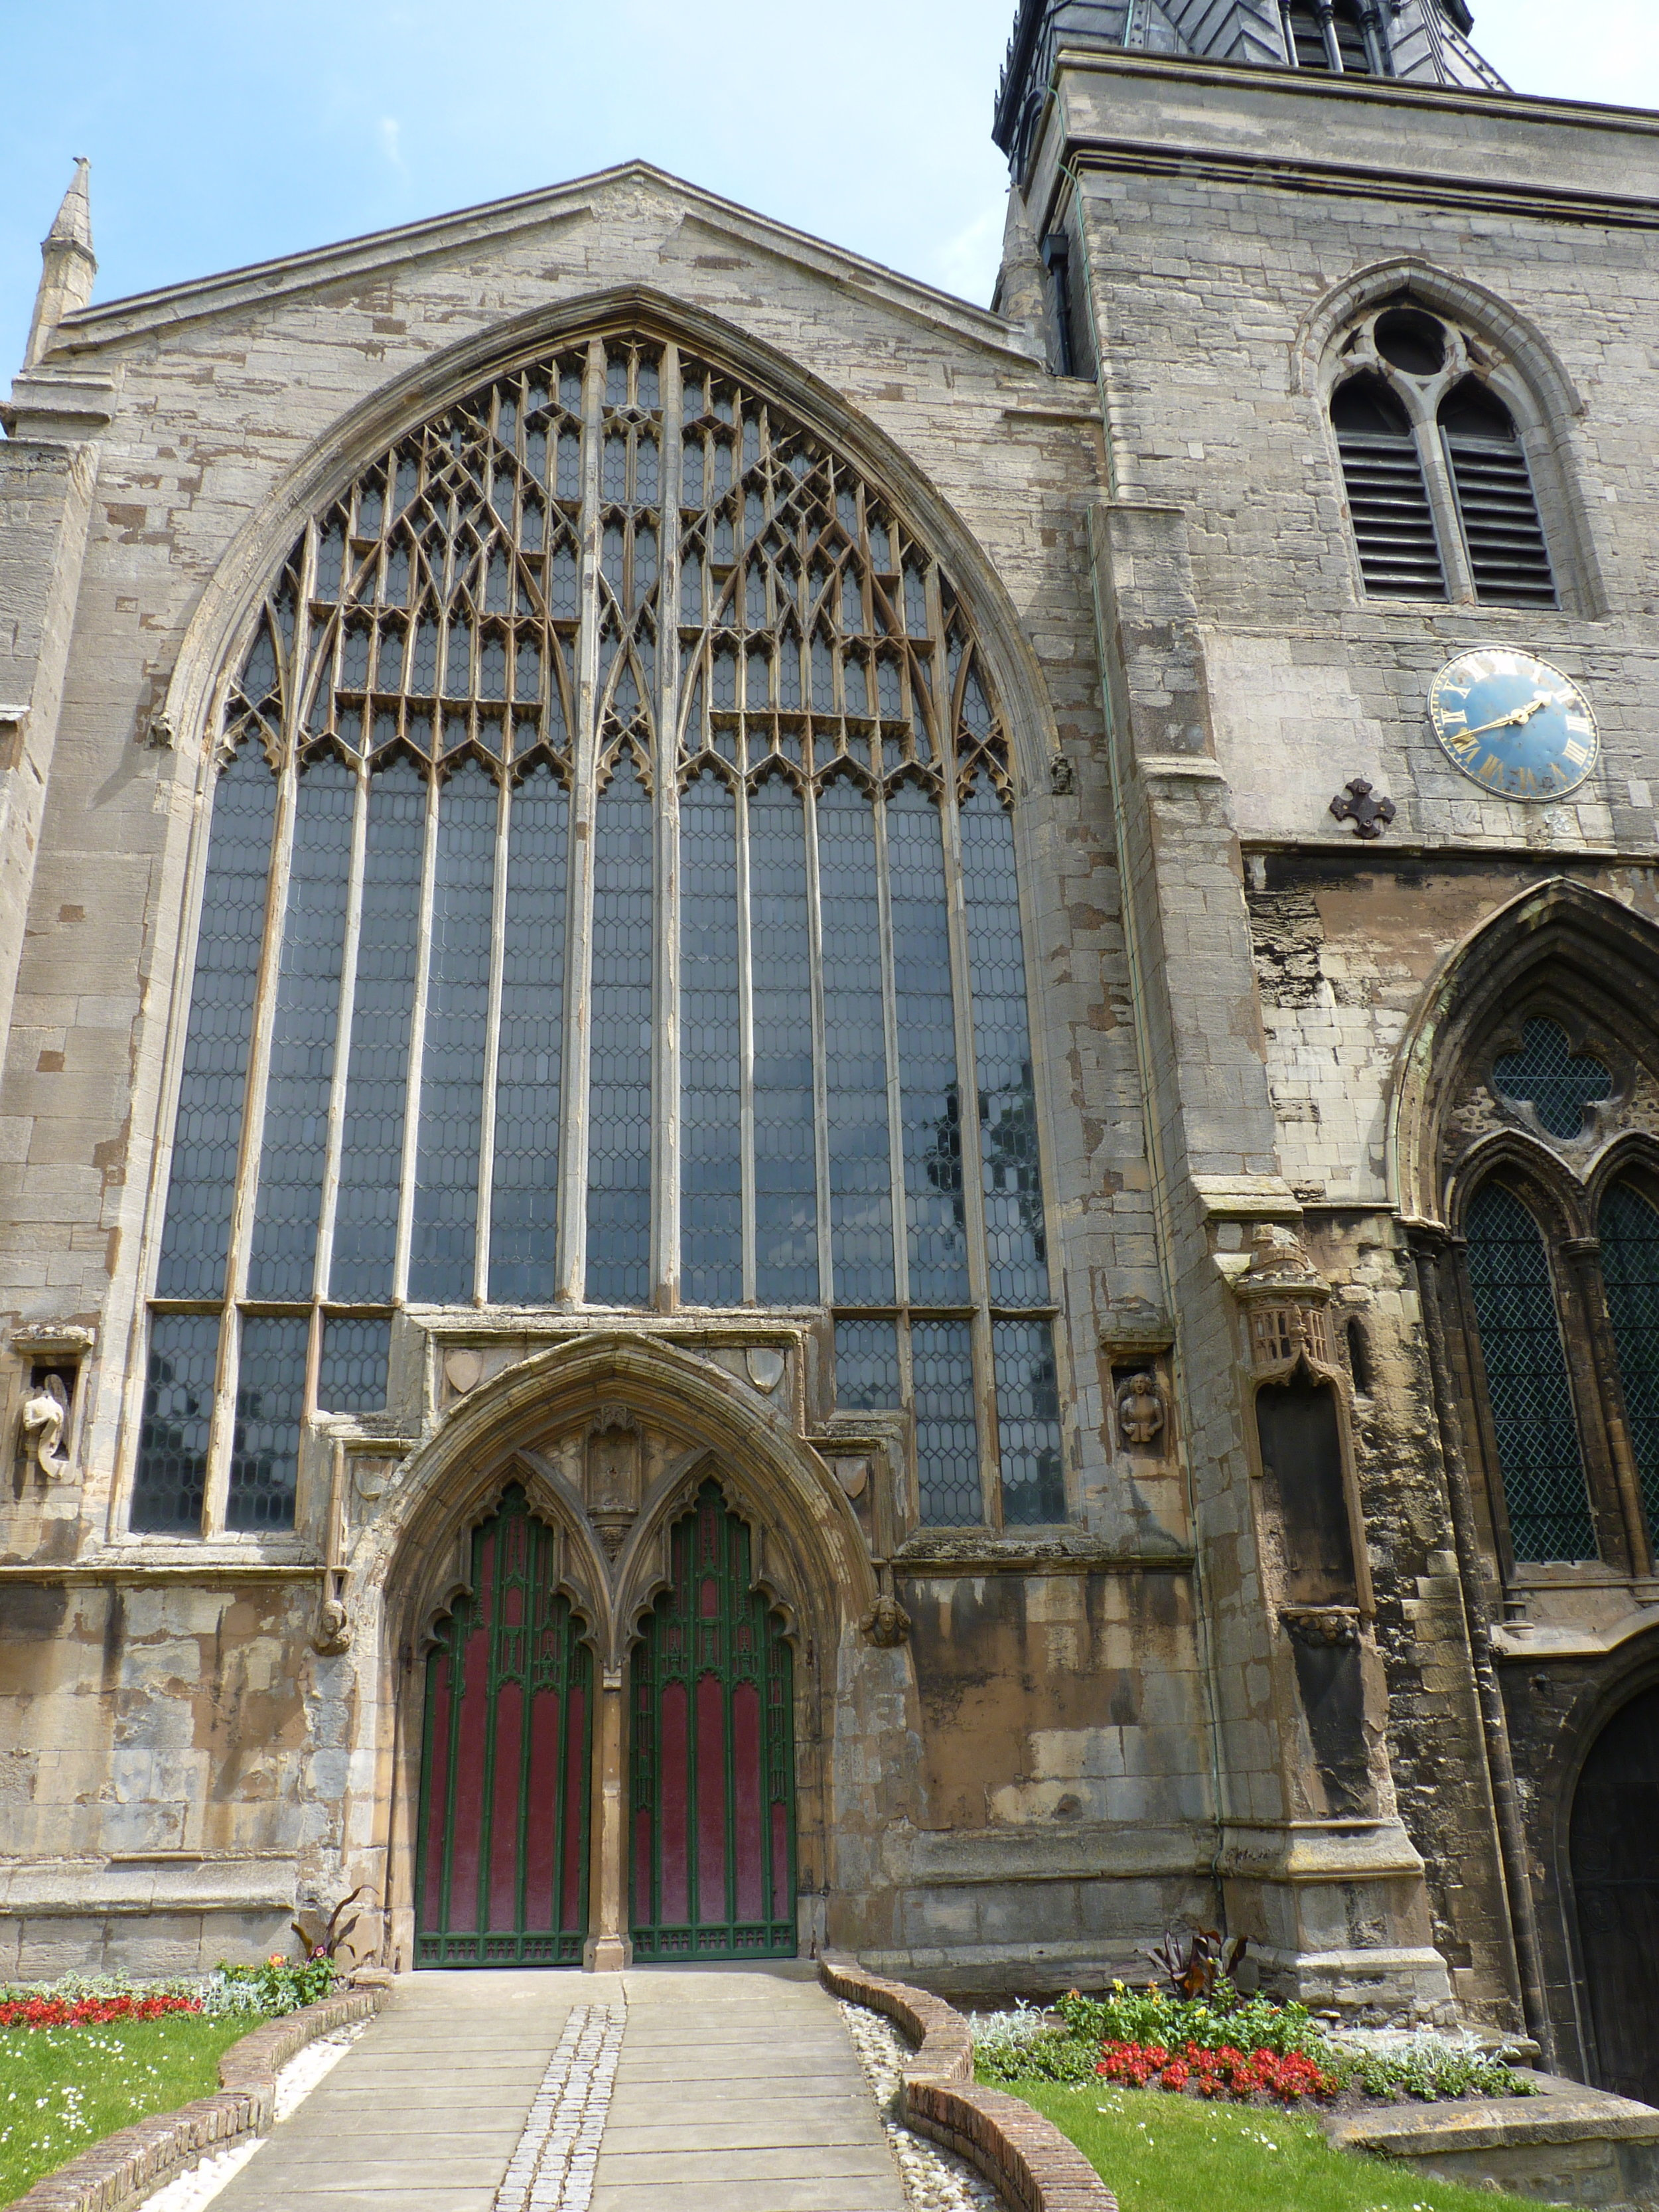 The facade of St Nicholas with its magnificent west window tracery